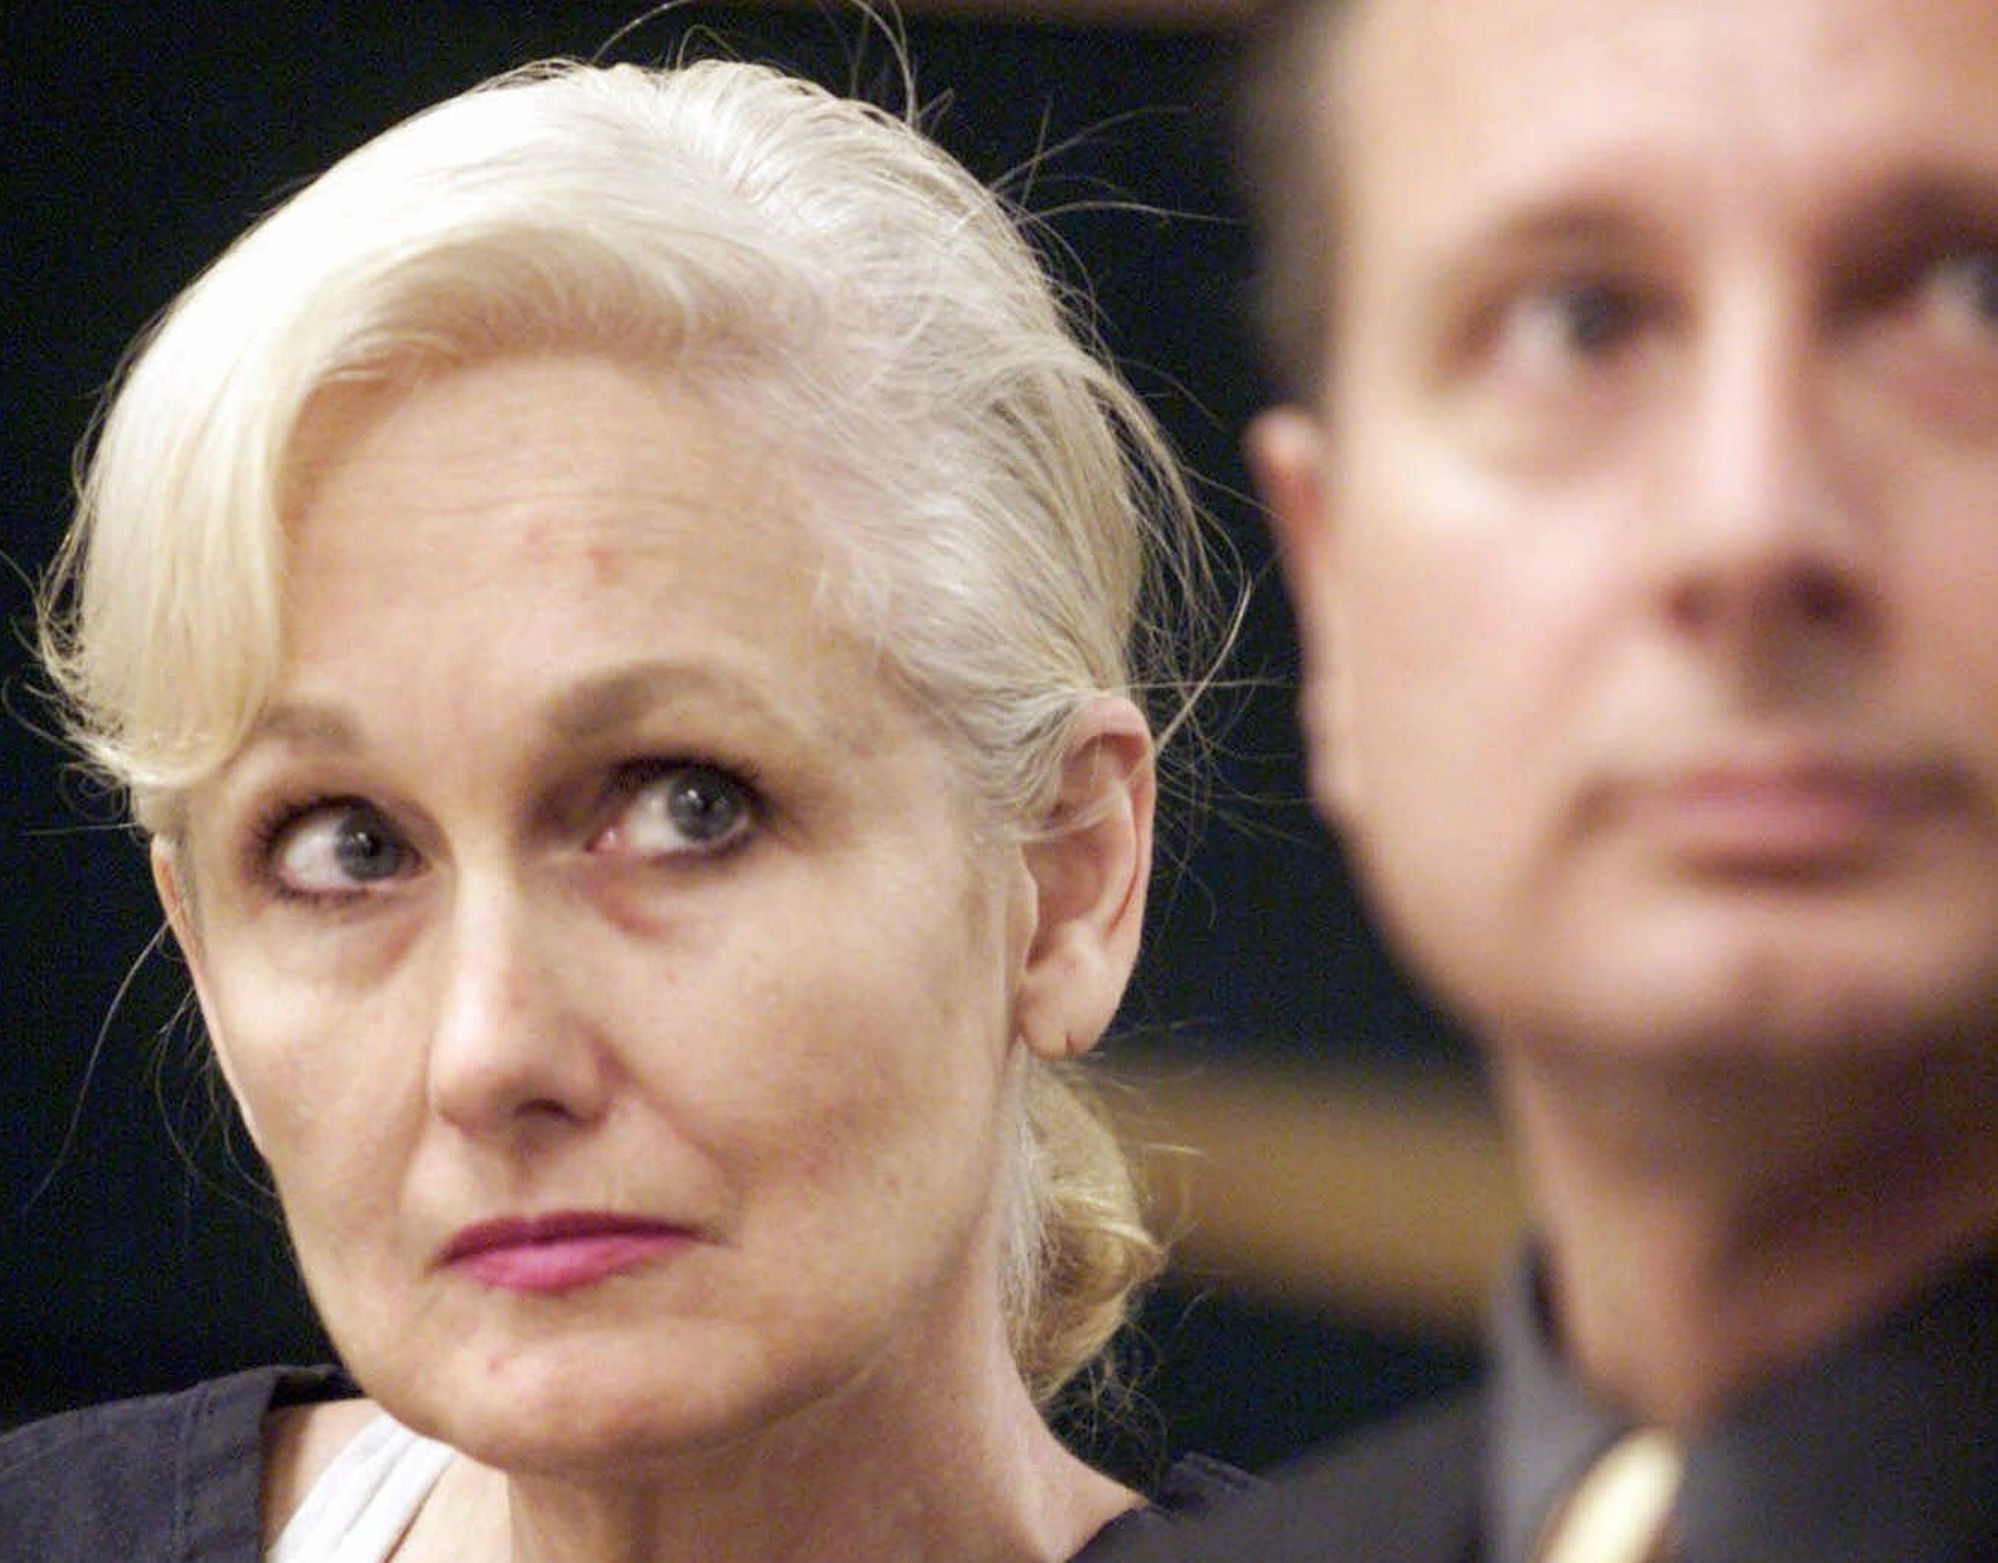 Las Vegas' 'Black Widow Killer' hopes to prove innocence in millionaire husband's murder while out on parole